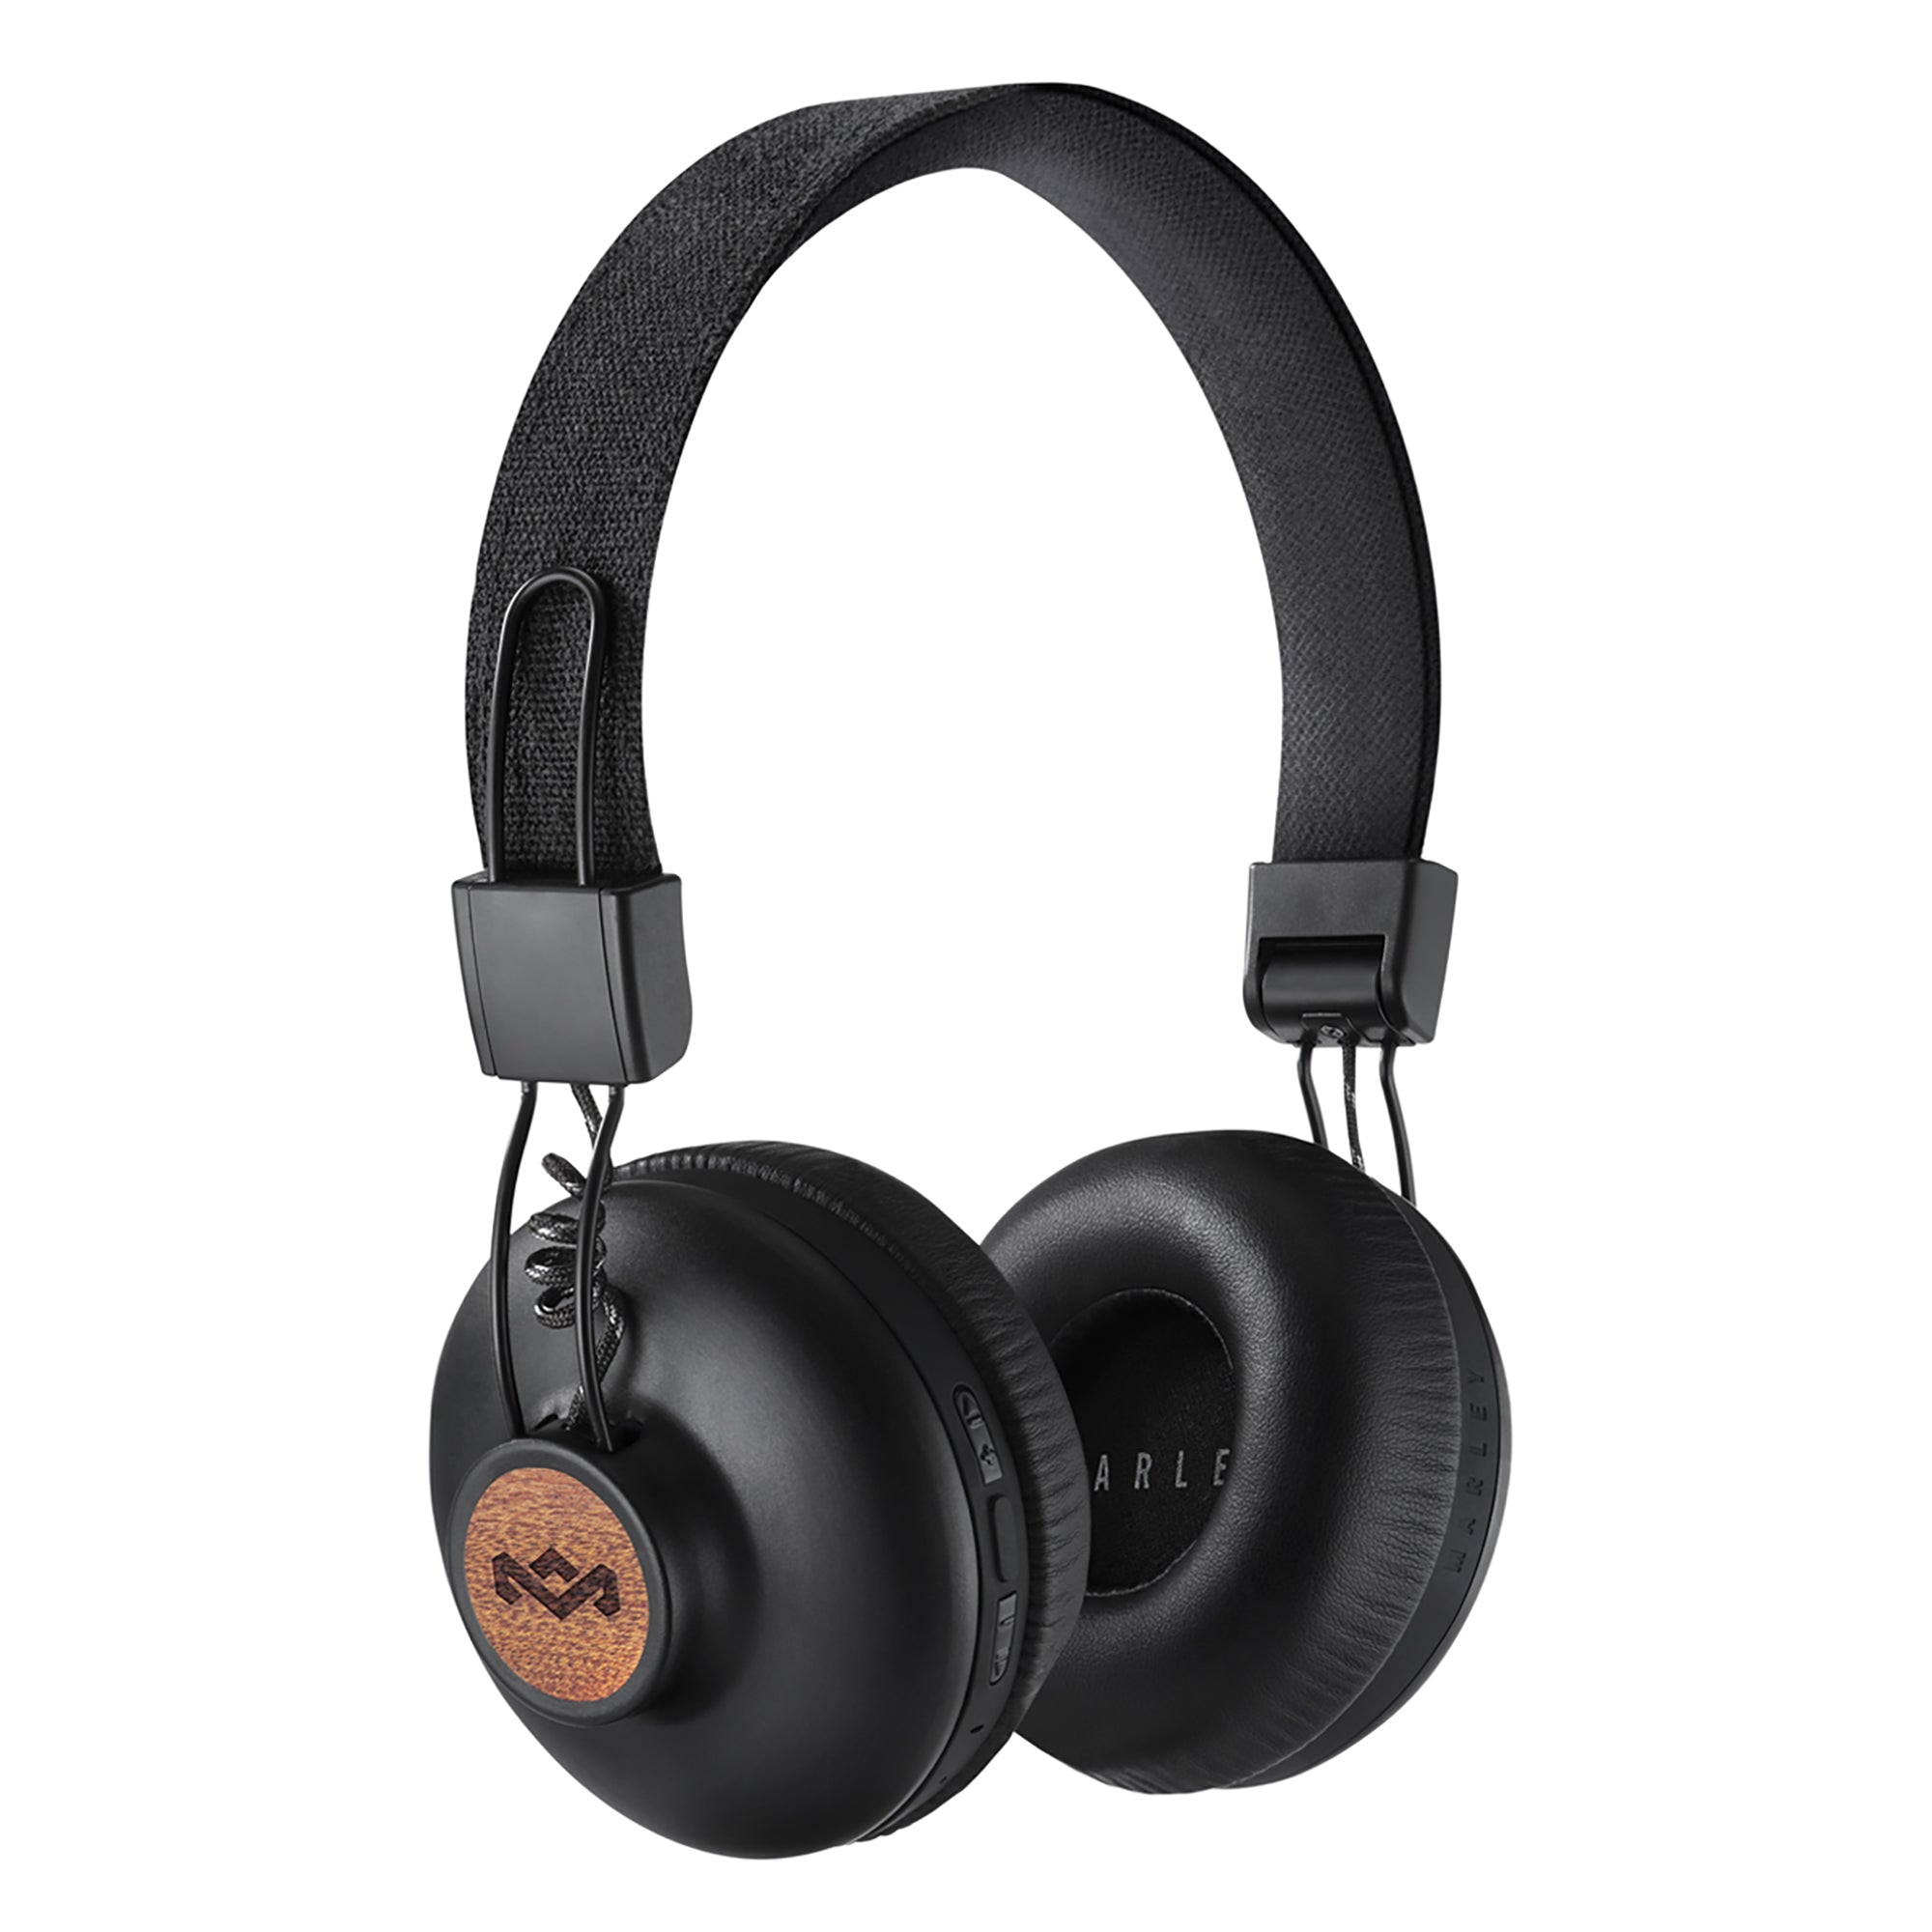 Casque tour d'oreille Bluetooth sans fil Positive Vibration 2